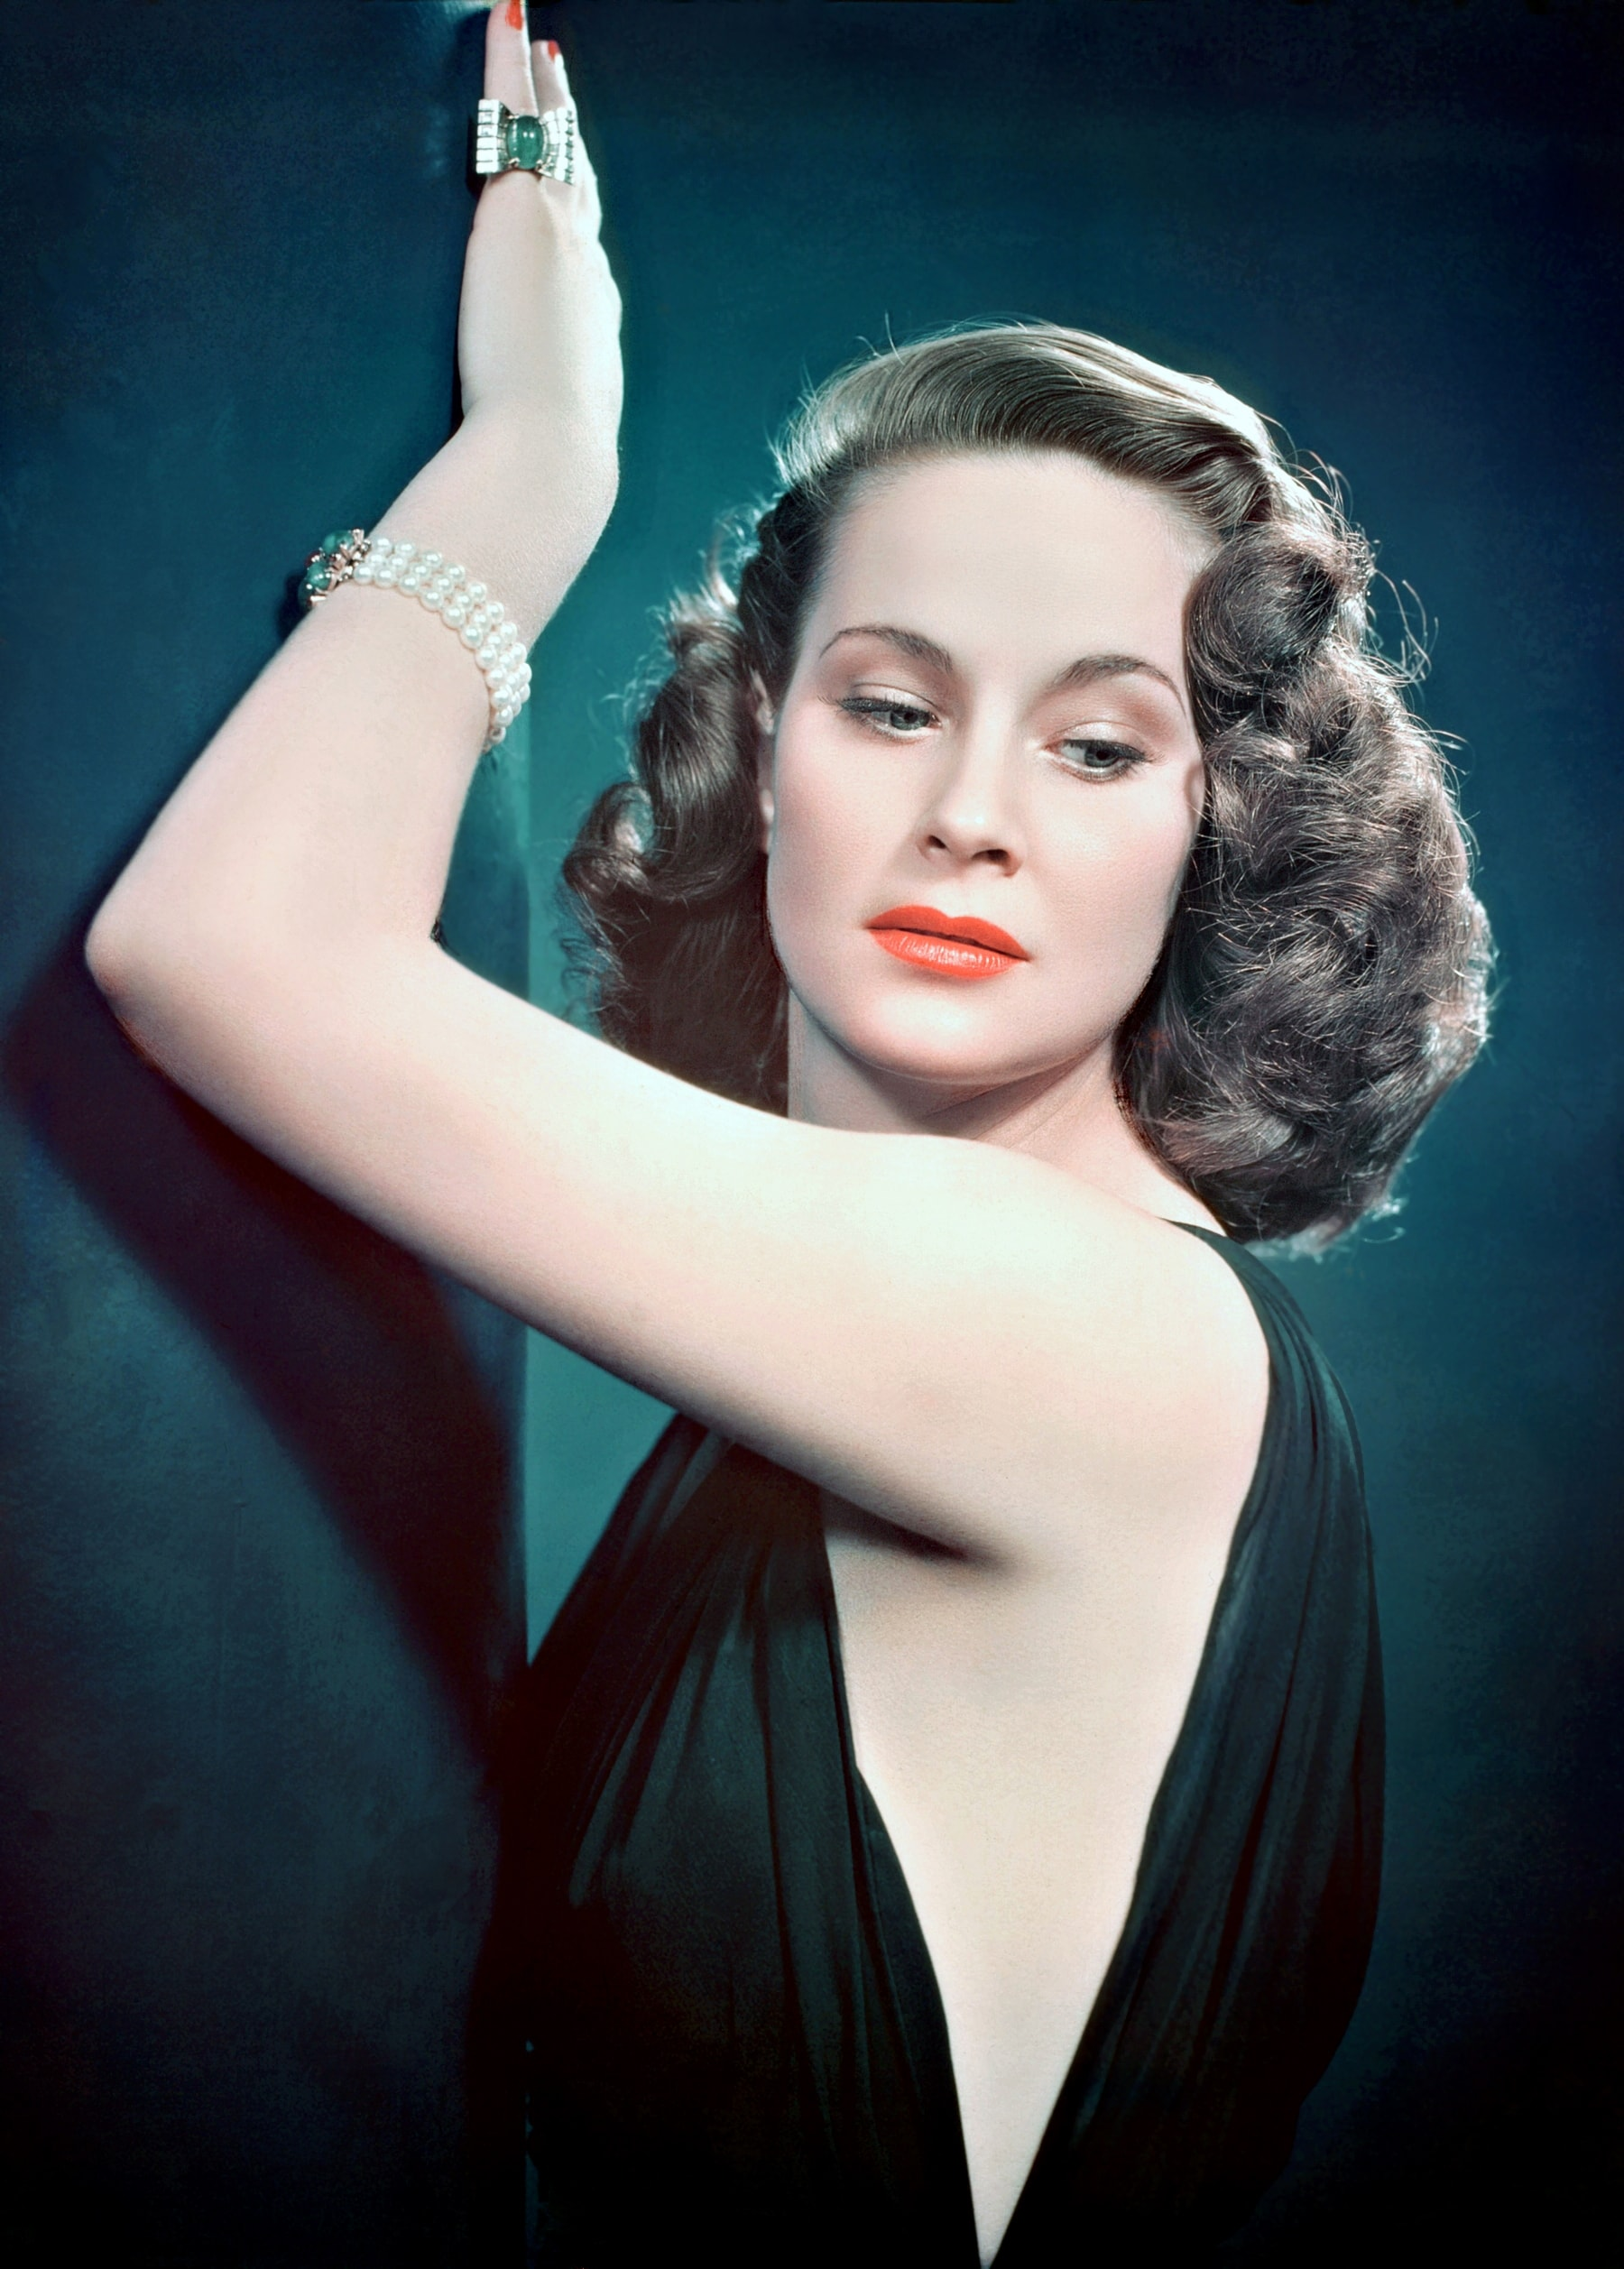 Alida Valli For mobile